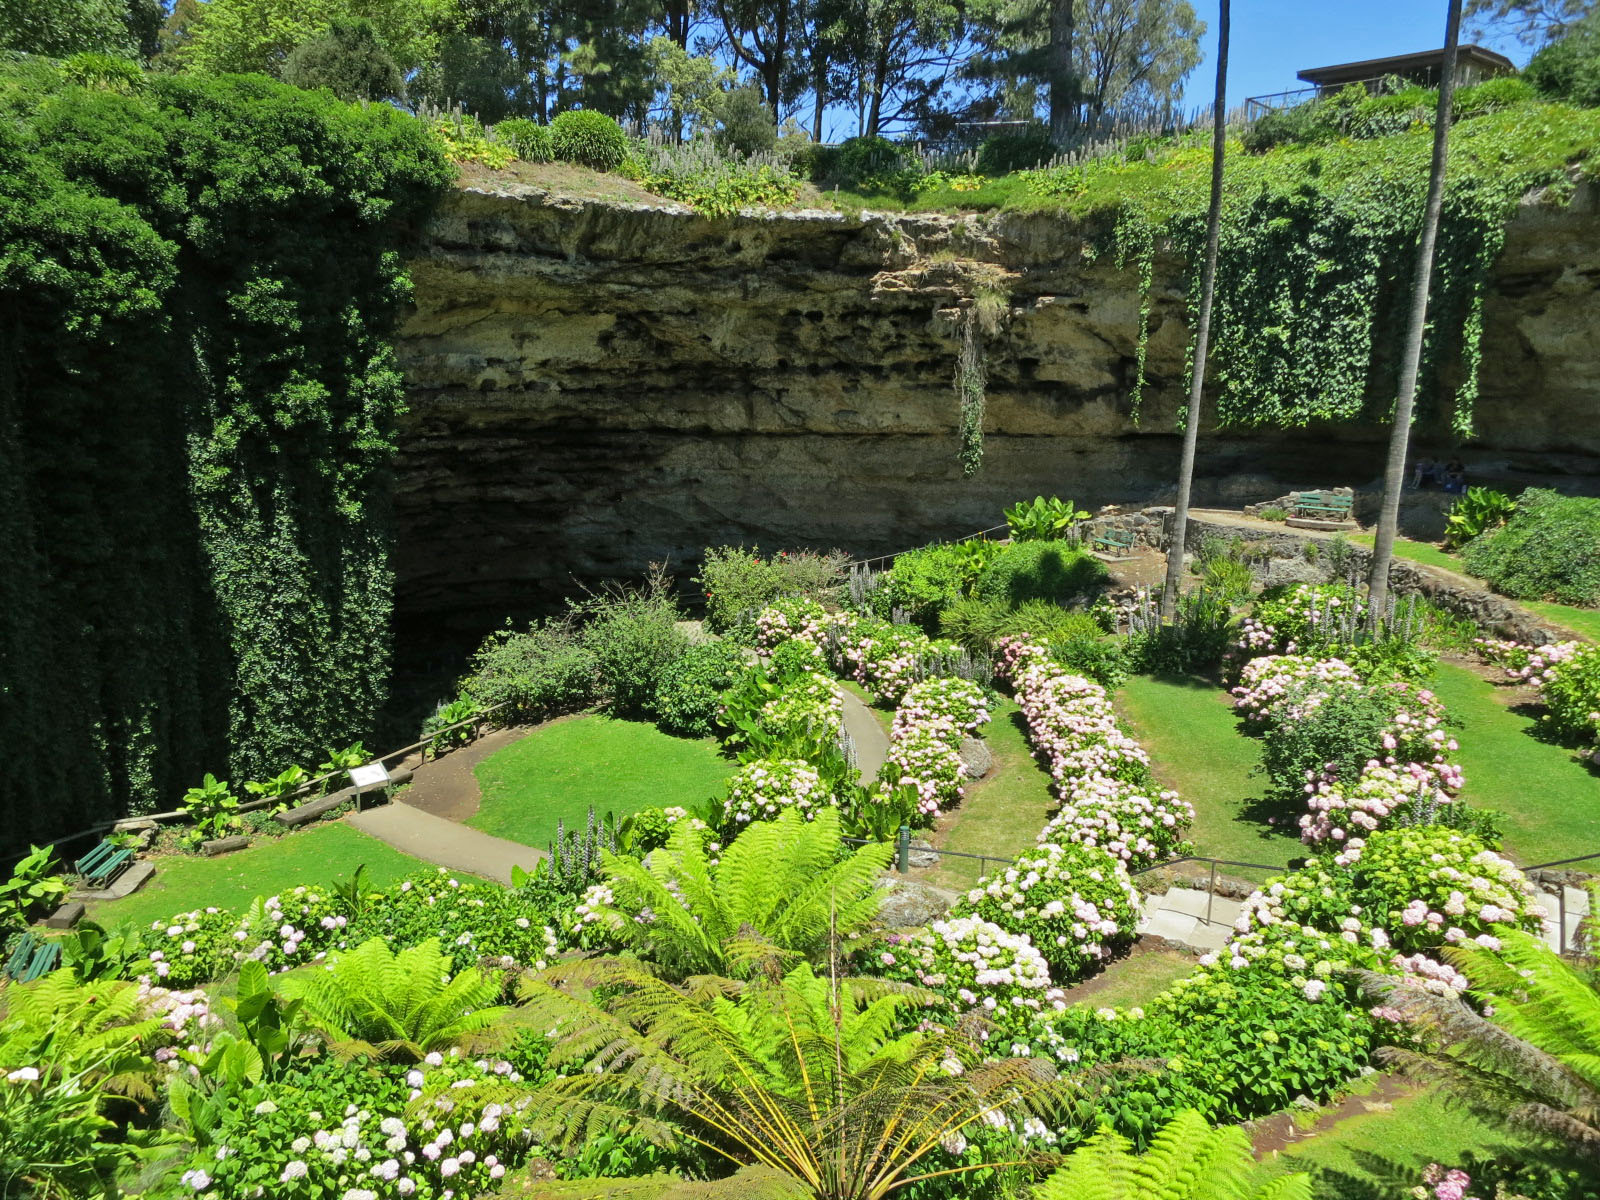 Umpherston Sinkhole Mount Gambier, History of Sinkholes in South Australia - South Australian Sinkholes